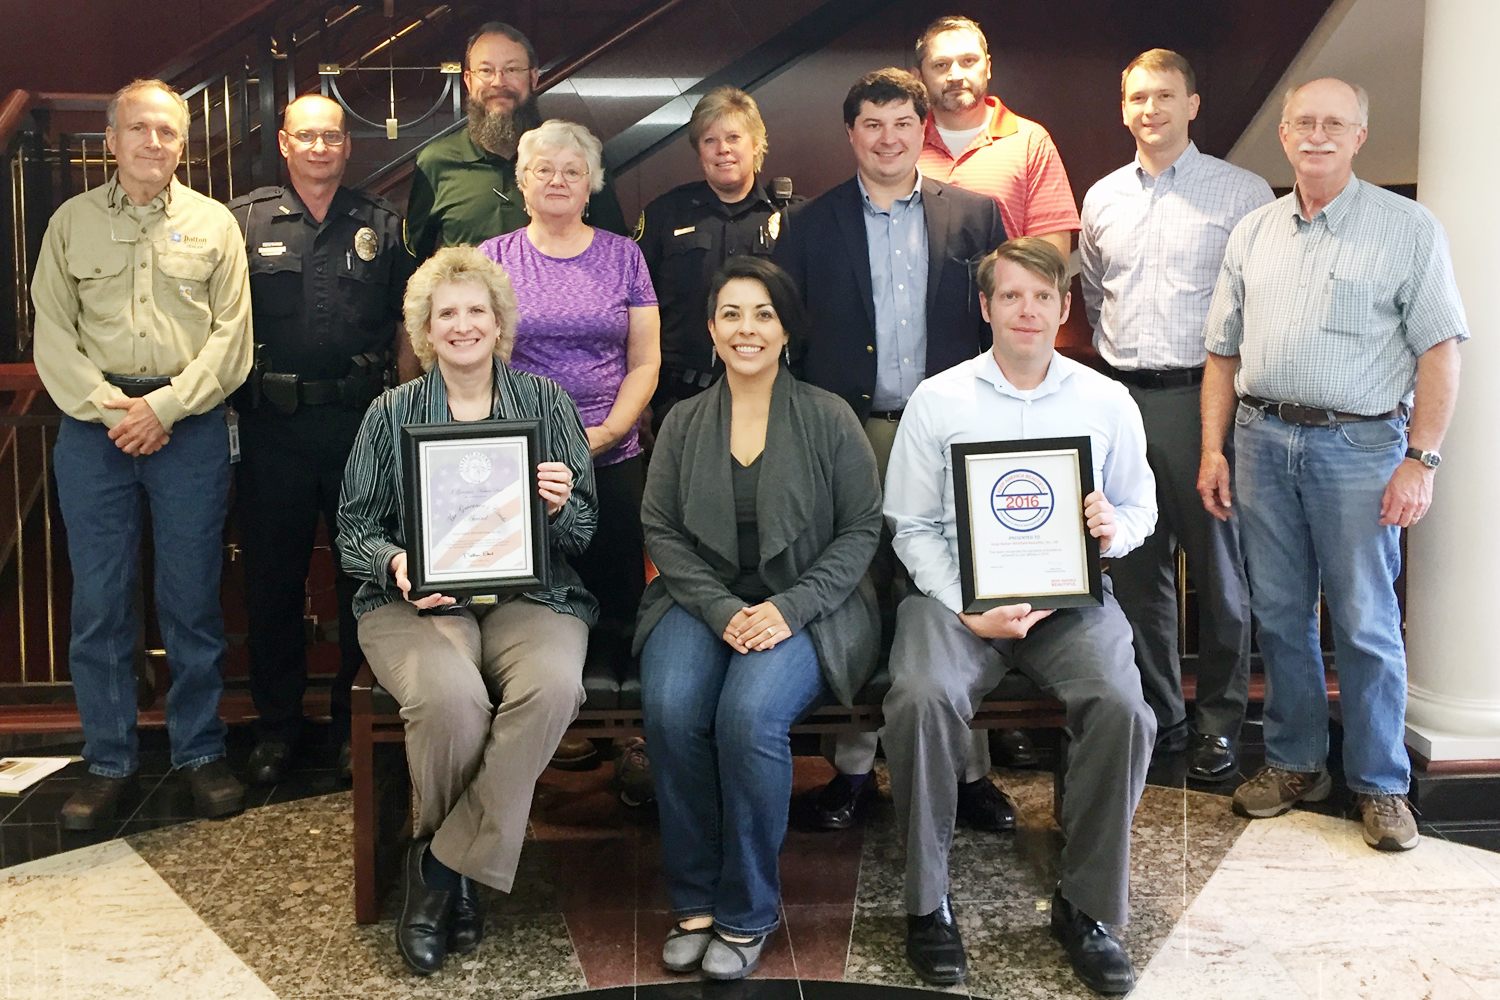 Pictured are Keep Dalton-Whitfield Beautiful board members with the awards for 2016.  Front row (left to right):  Karey Williams, Liz Swafford, Anthony Cline.  Middle row:  Patricia Edwards, Scott Delay.  Top row:  Phillip Pfeifer, Chris Cochran, Dirk Verhoeff, Jennifer Jefferies, Joe Thomas, Aaron Marcelli, Clyde Taylor.